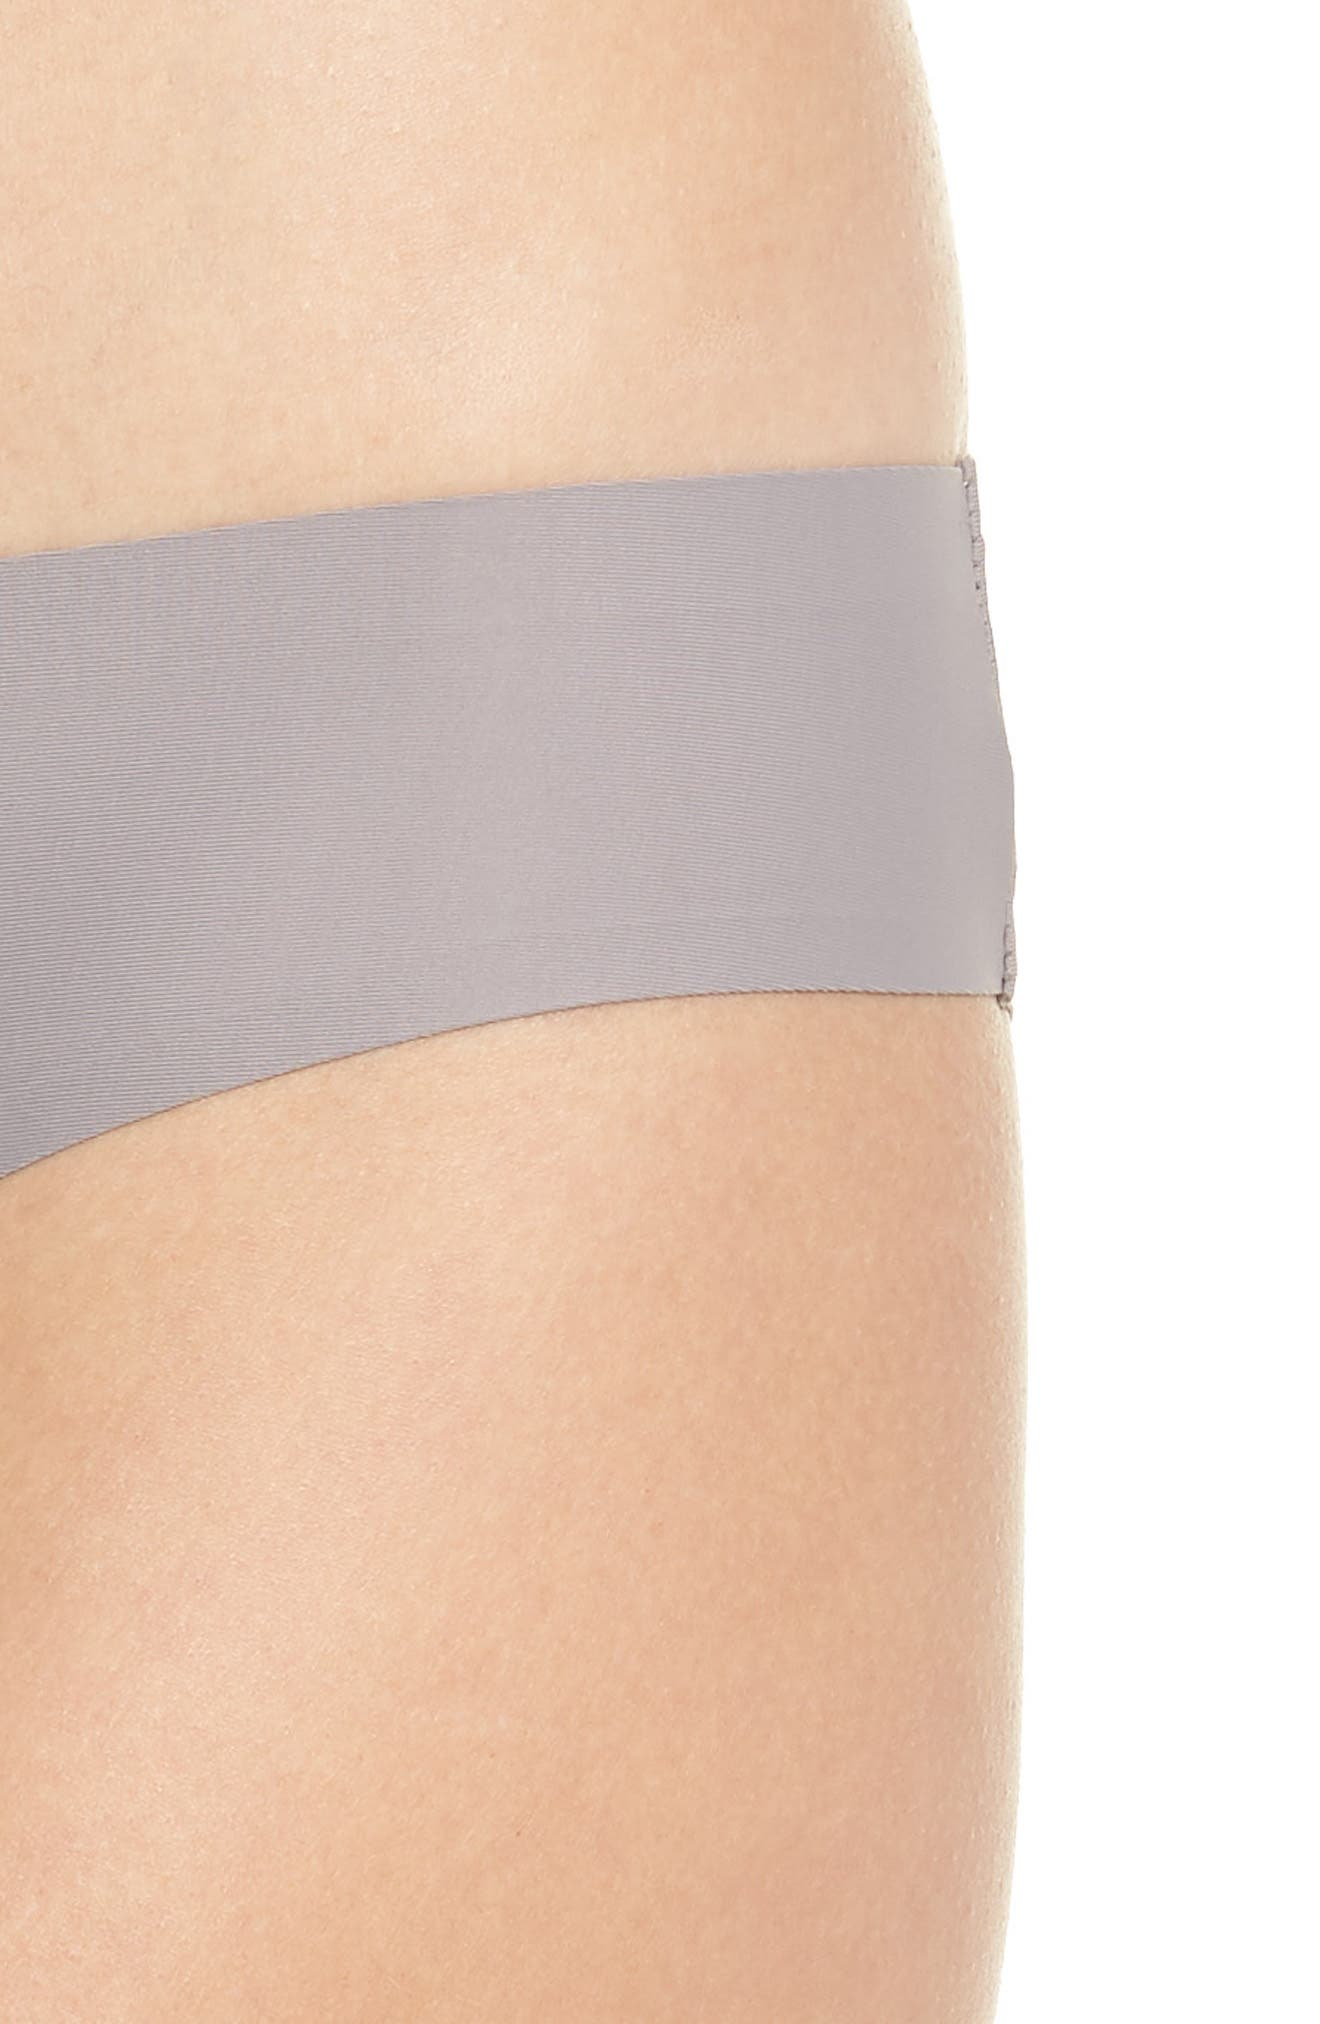 Skinz Hipster Briefs,                             Alternate thumbnail 4, color,                             SHADOW